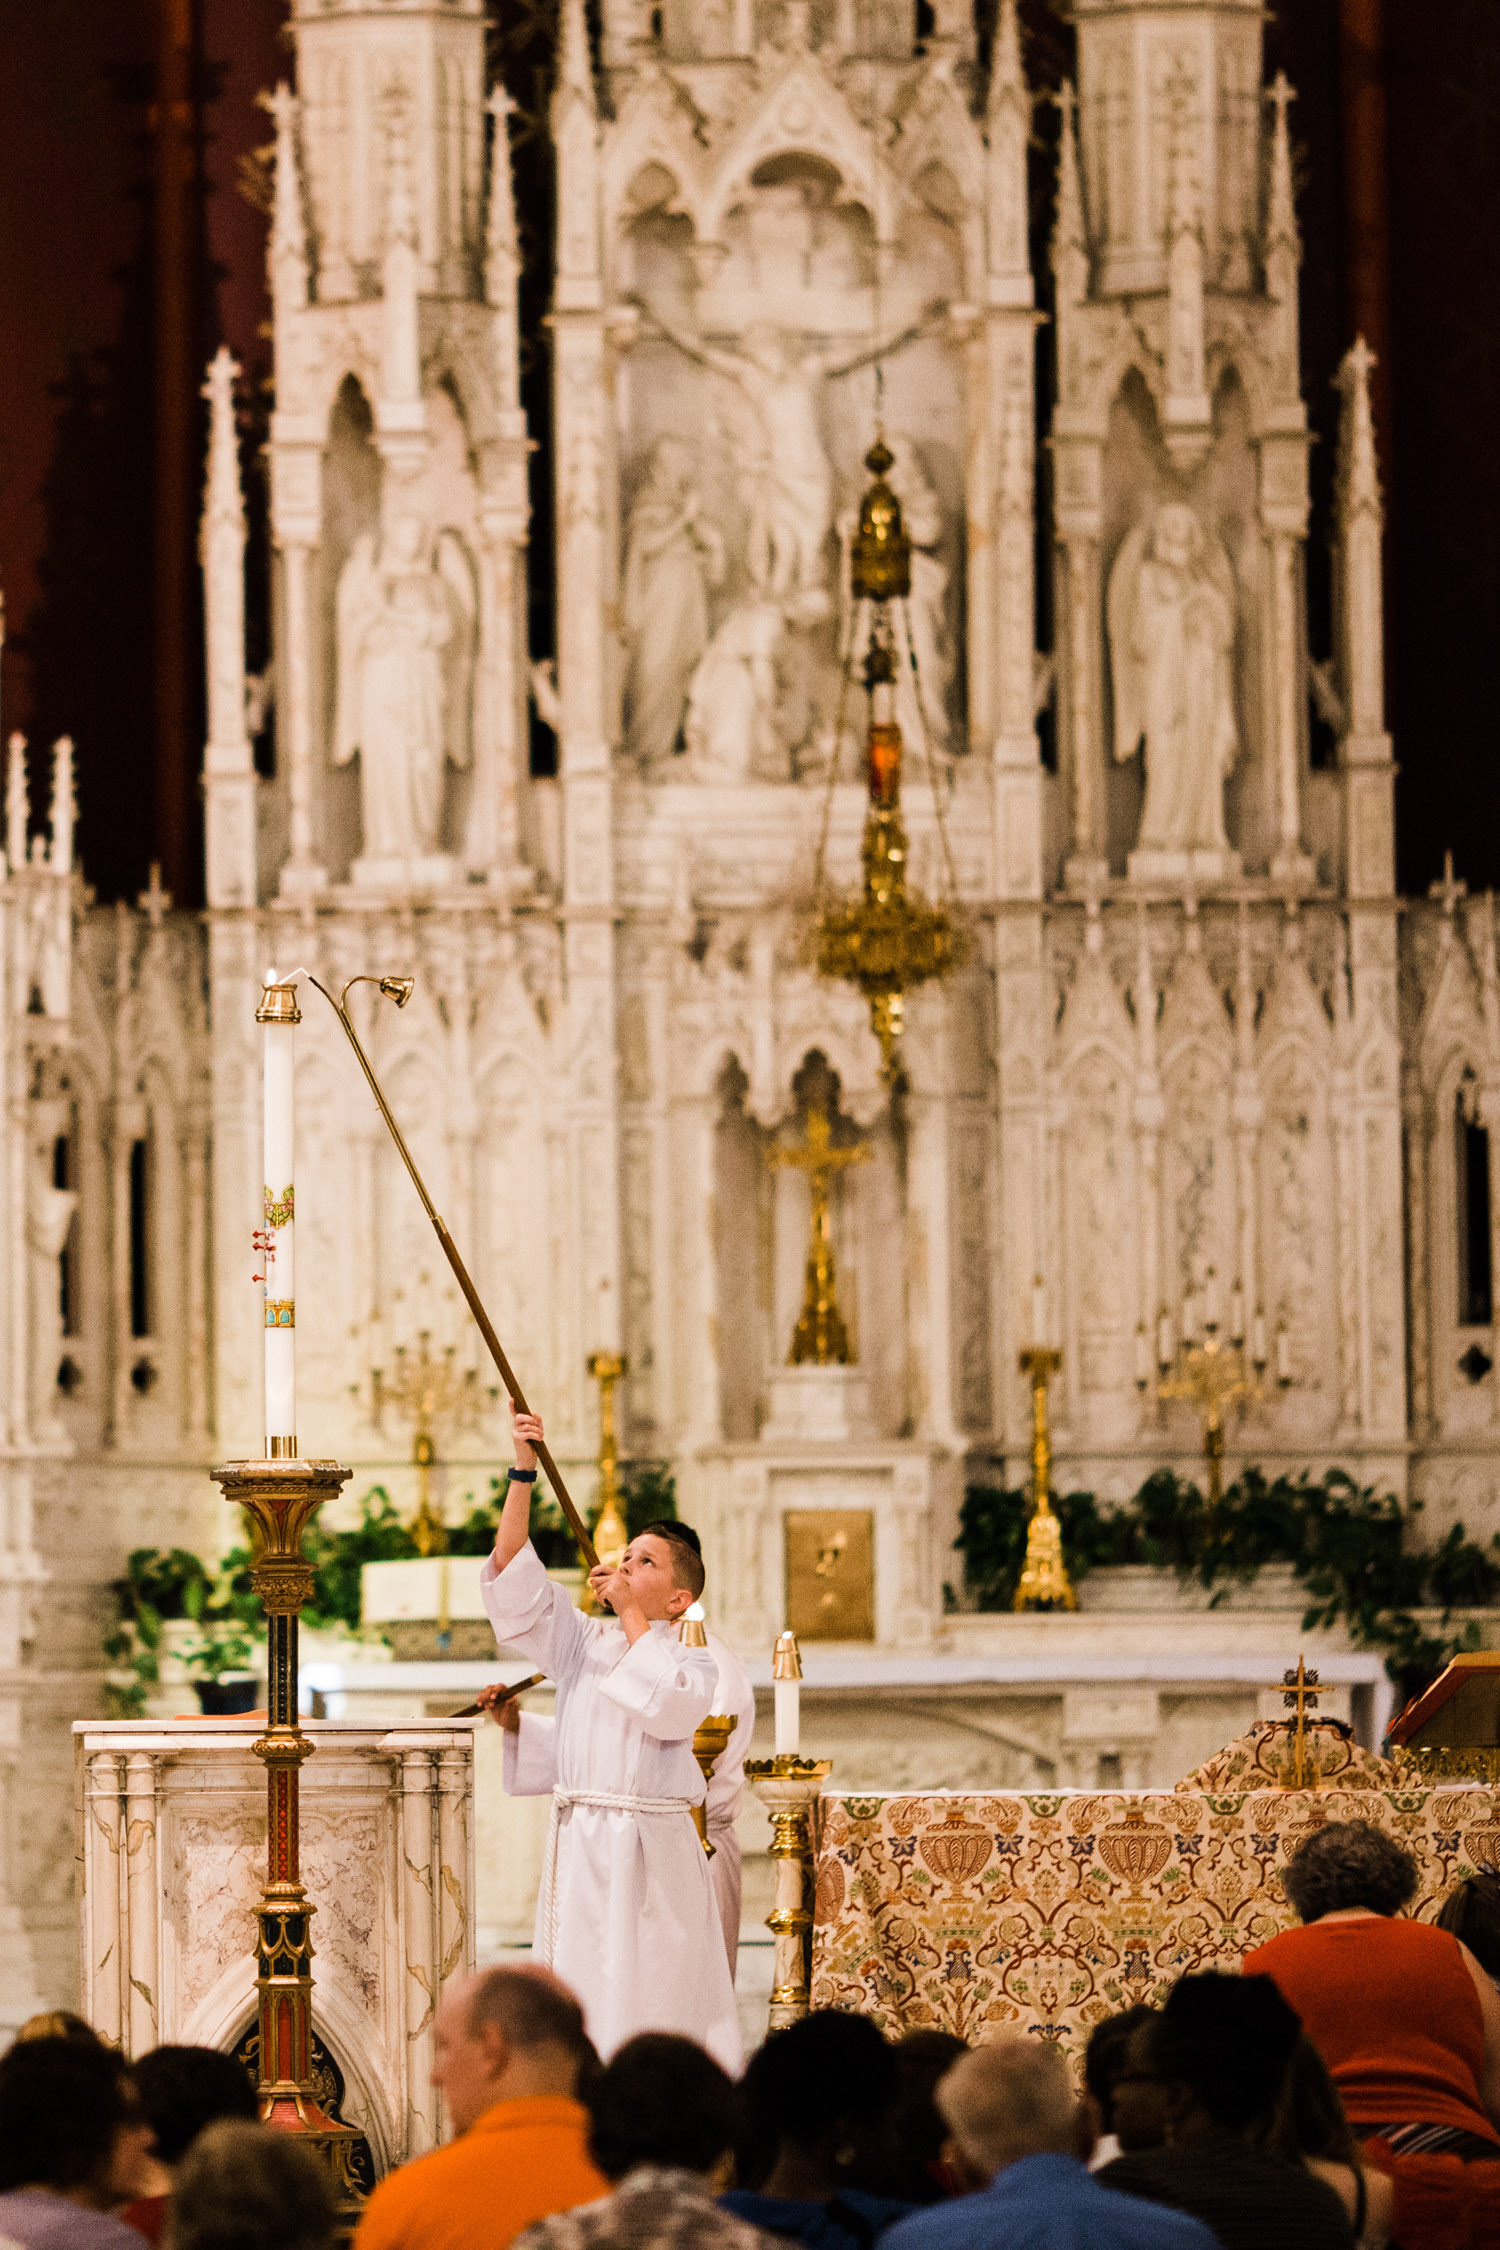 Mass Times - Weekend MassSaturday: 5:00p.m.Sunday: 8:00a.m., 10:00a.m., 12:00p.m., 5:00p.m.Confessions are on Saturday, 3:30-5:00 p.m., and ten minutes before each Mass.Daily MassMonday: 12:05p.m.Tuesday: 7:00a.m., 12:05p.m.Wednesday: 7:00a.m., 12:05p.m.Thursday: 7:00a.m., 12:05p.m.Friday: 7:00a.m., 12:05p.m., 5:05 p.m.Saturday: 8:00a.m.More information about specific Masses can be found here.